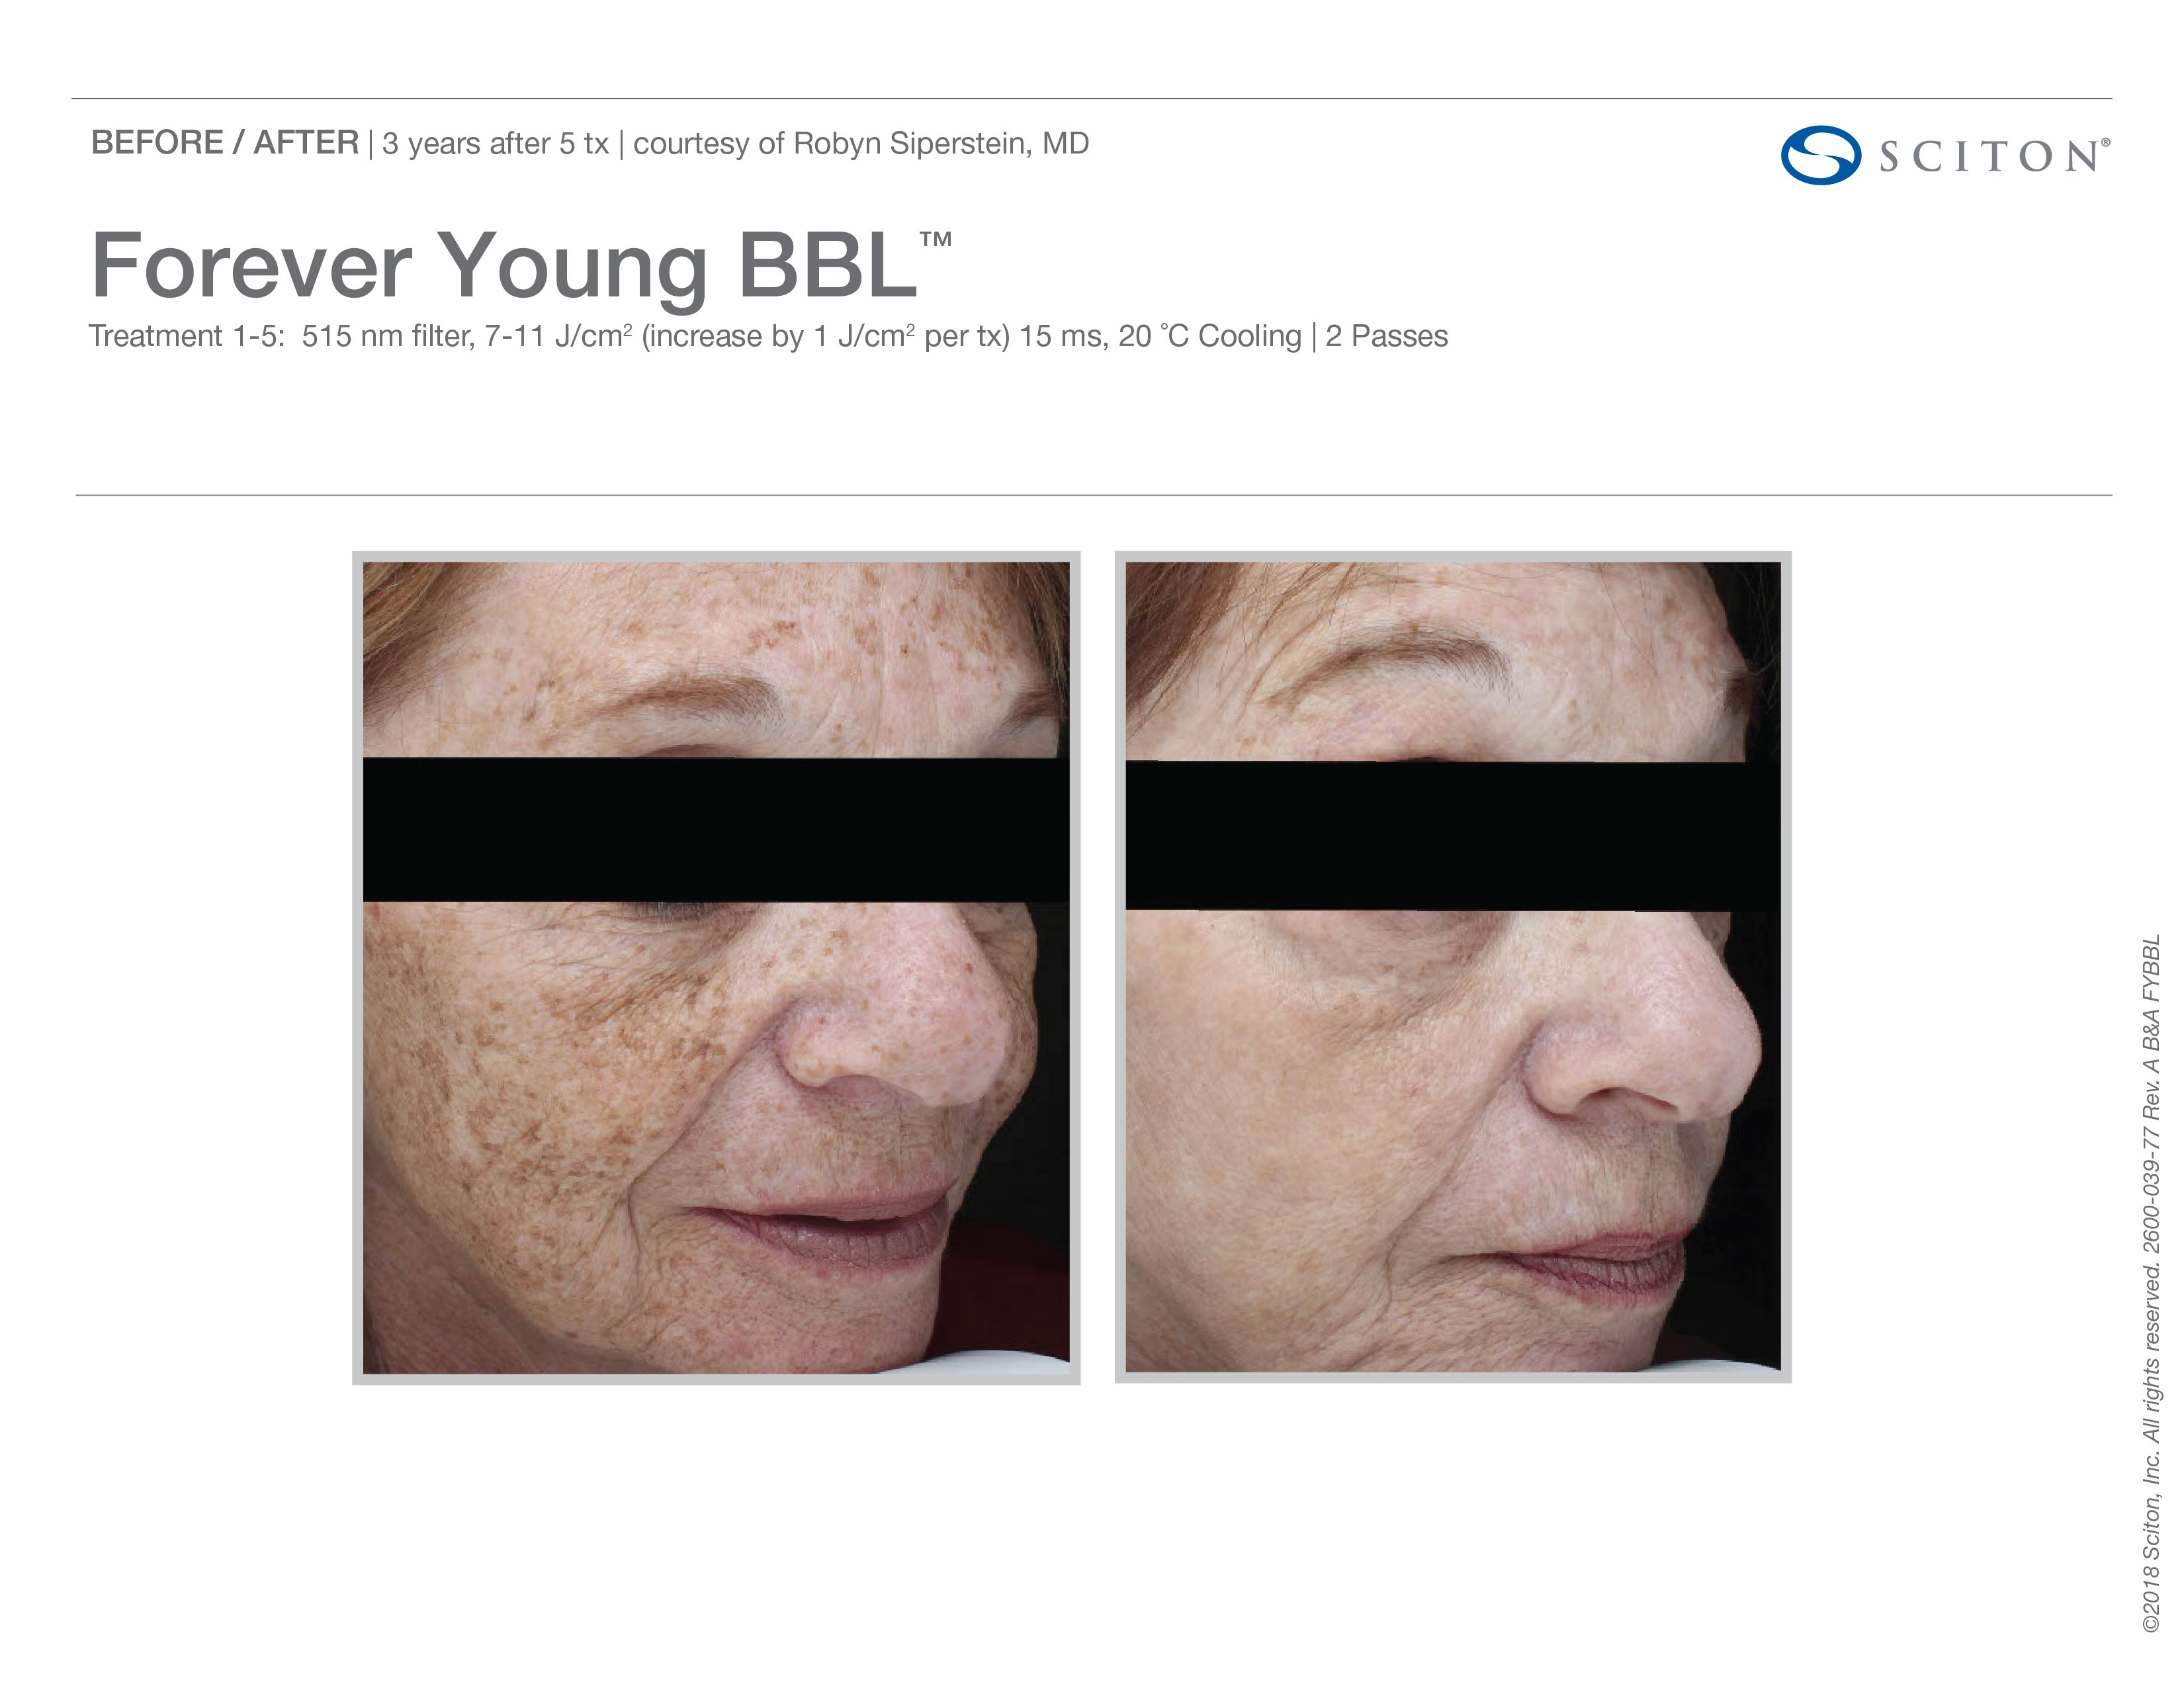 FYBBL-before-after-photo-1